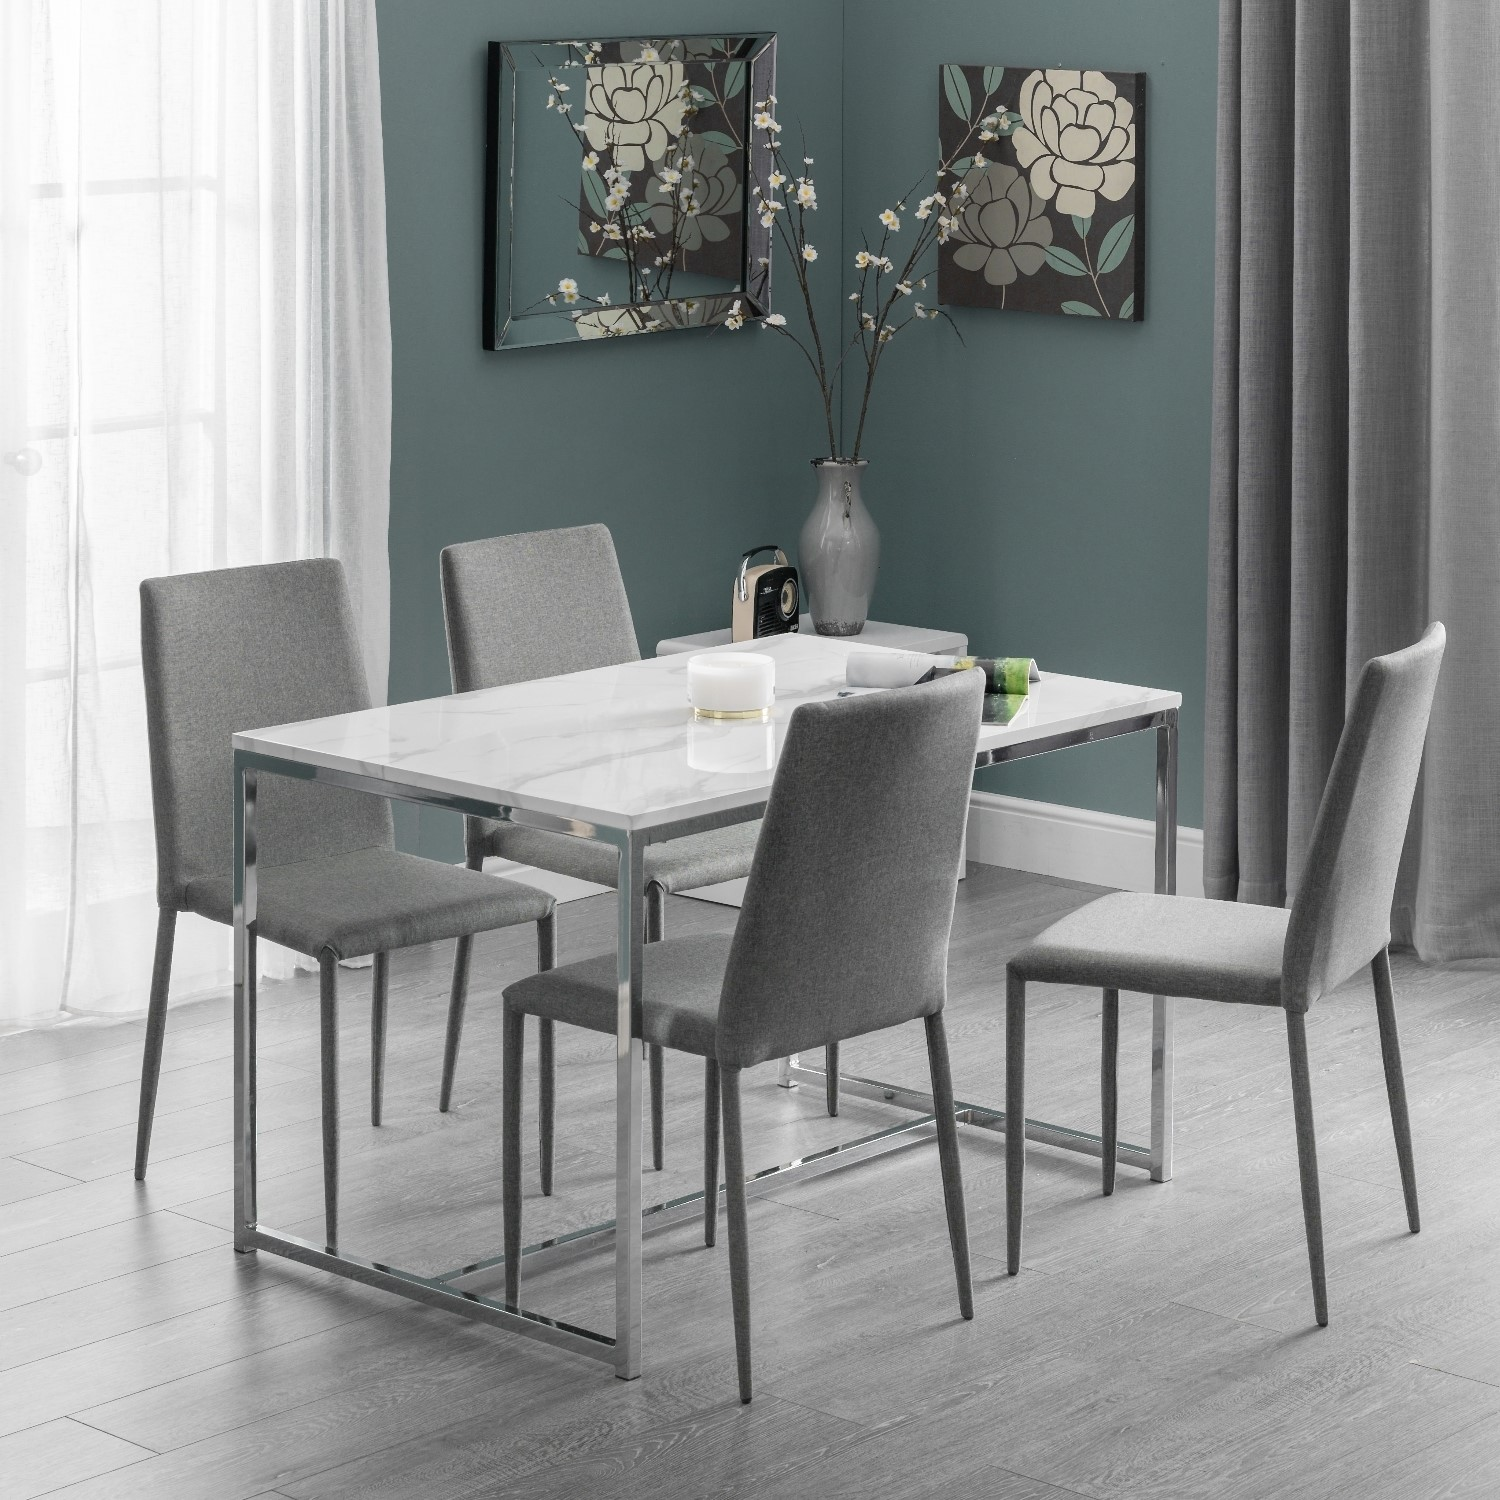 White Marble Dining Table with 6 Grey Dining Chairs - Julian Bowen Scala